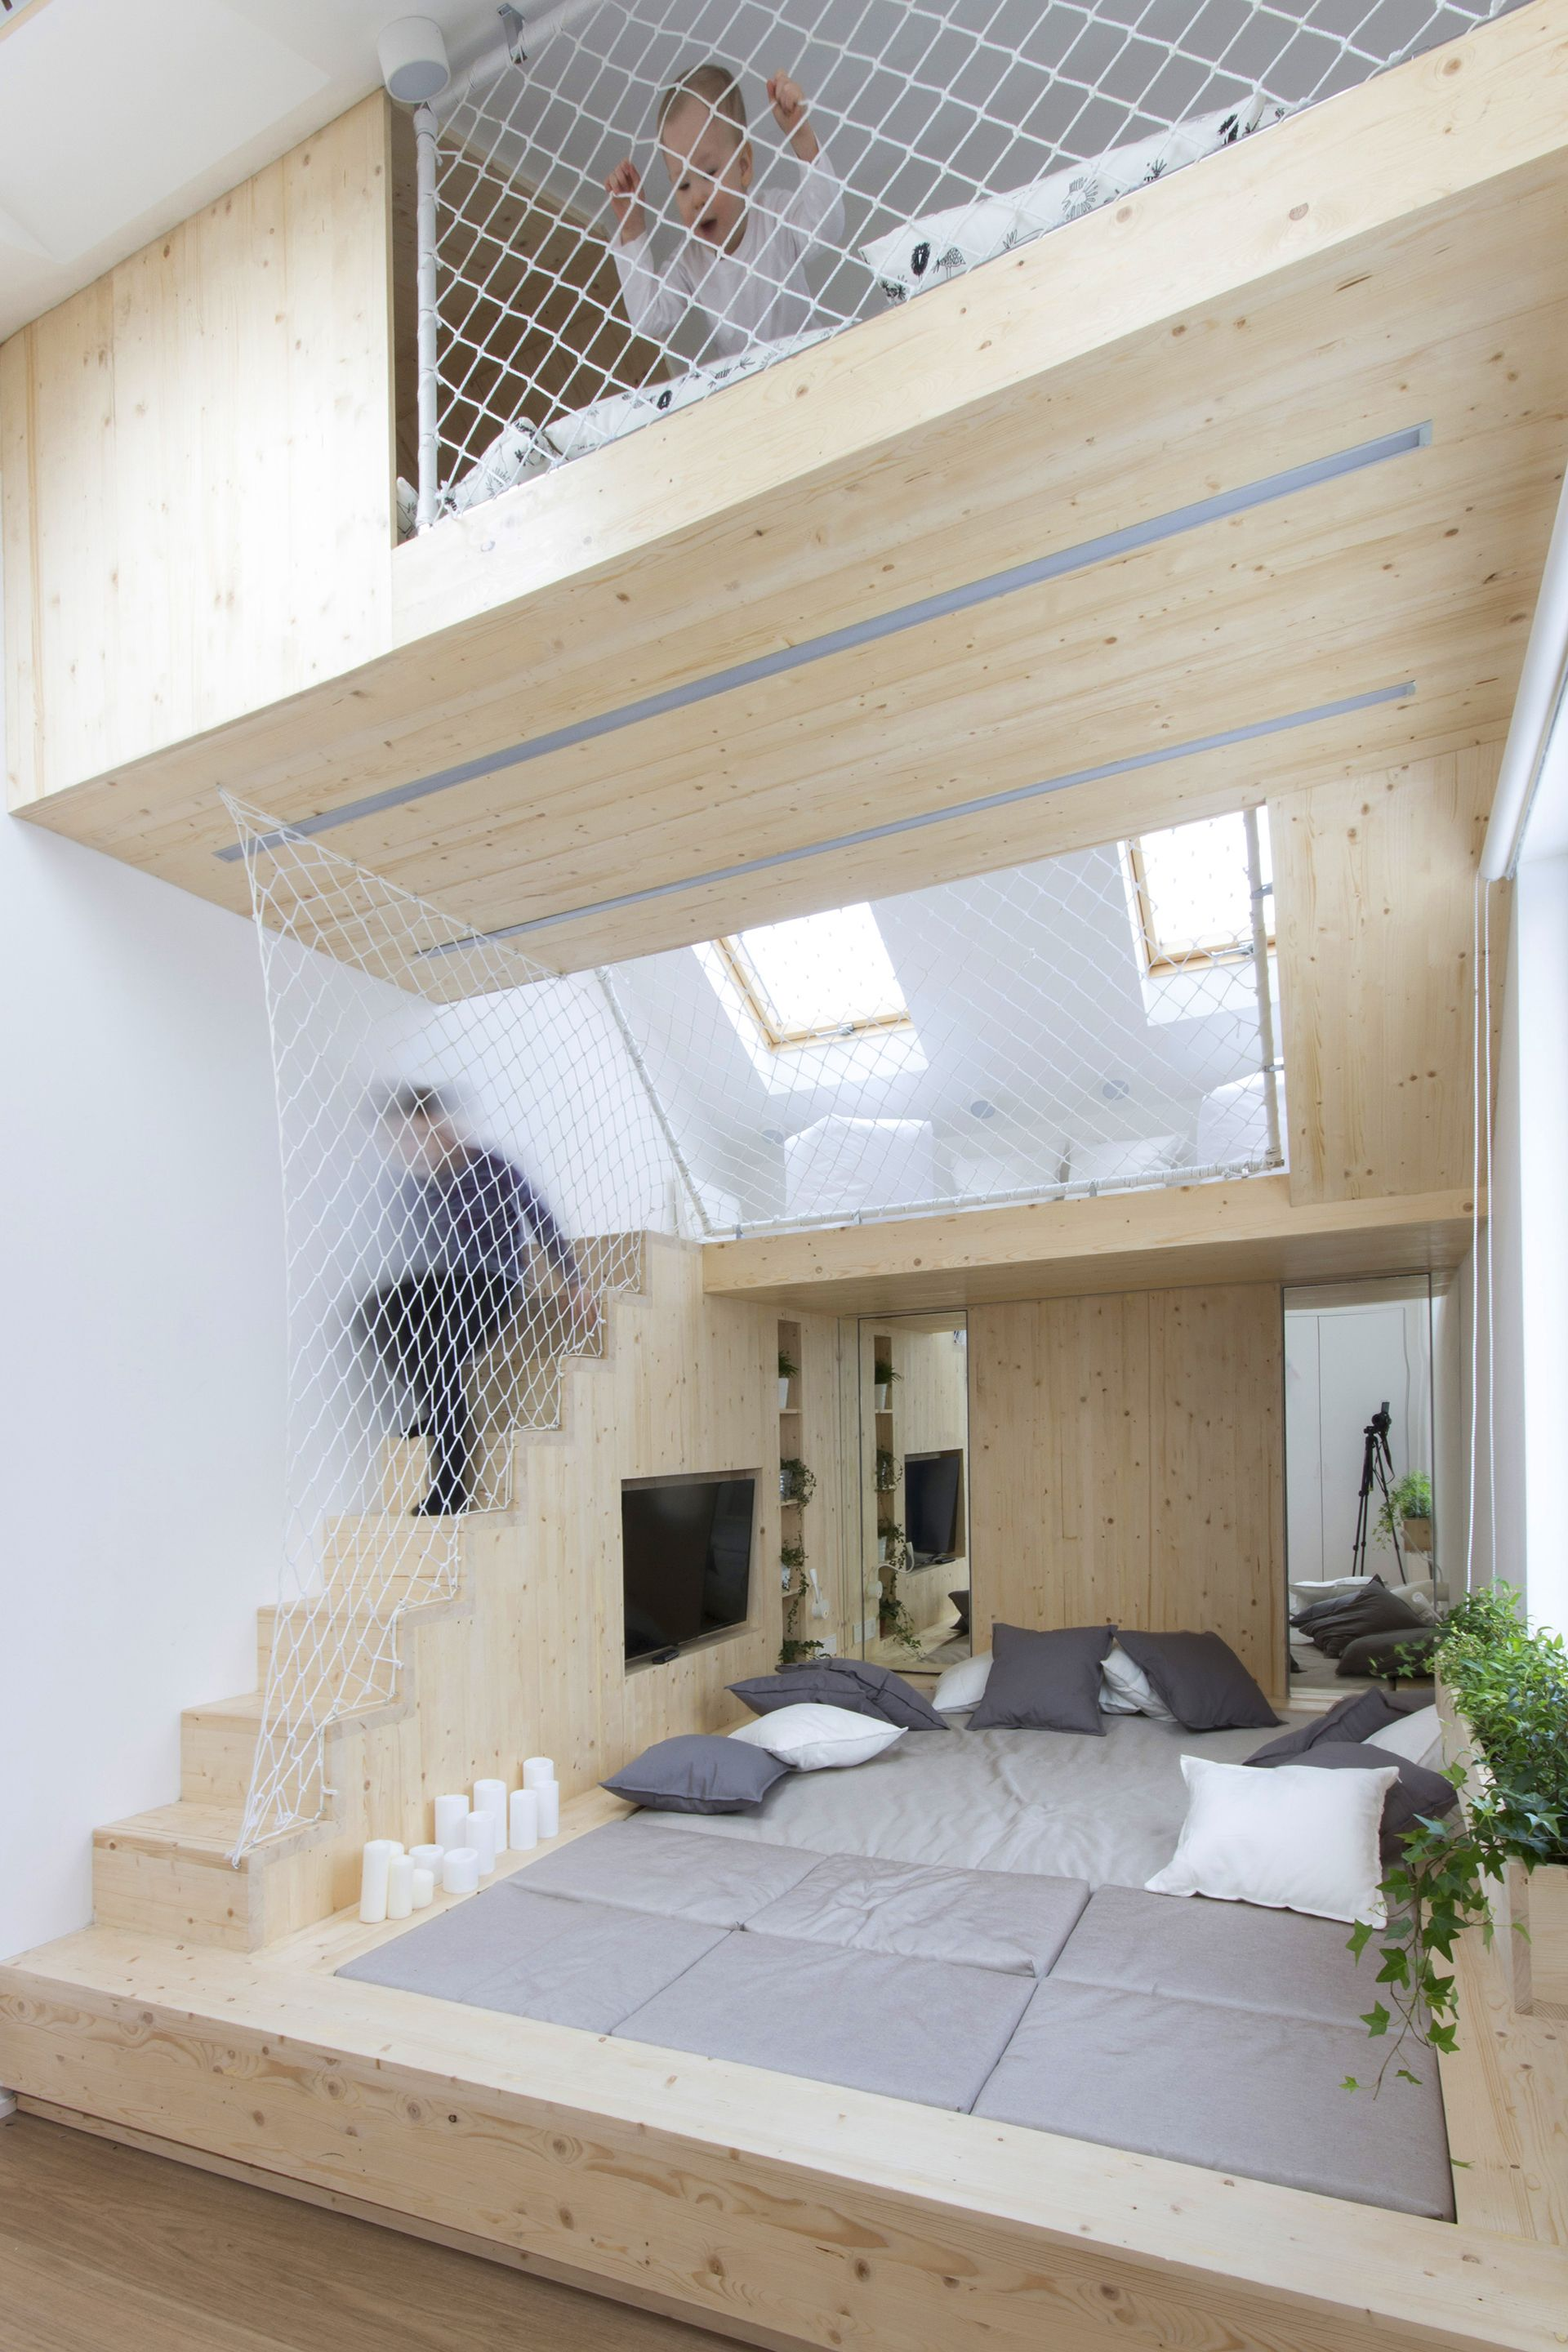 Sleep and Play - Multifunctional Spaces - Ruetemple - Moscow - Bedroom and  Loft - Humble